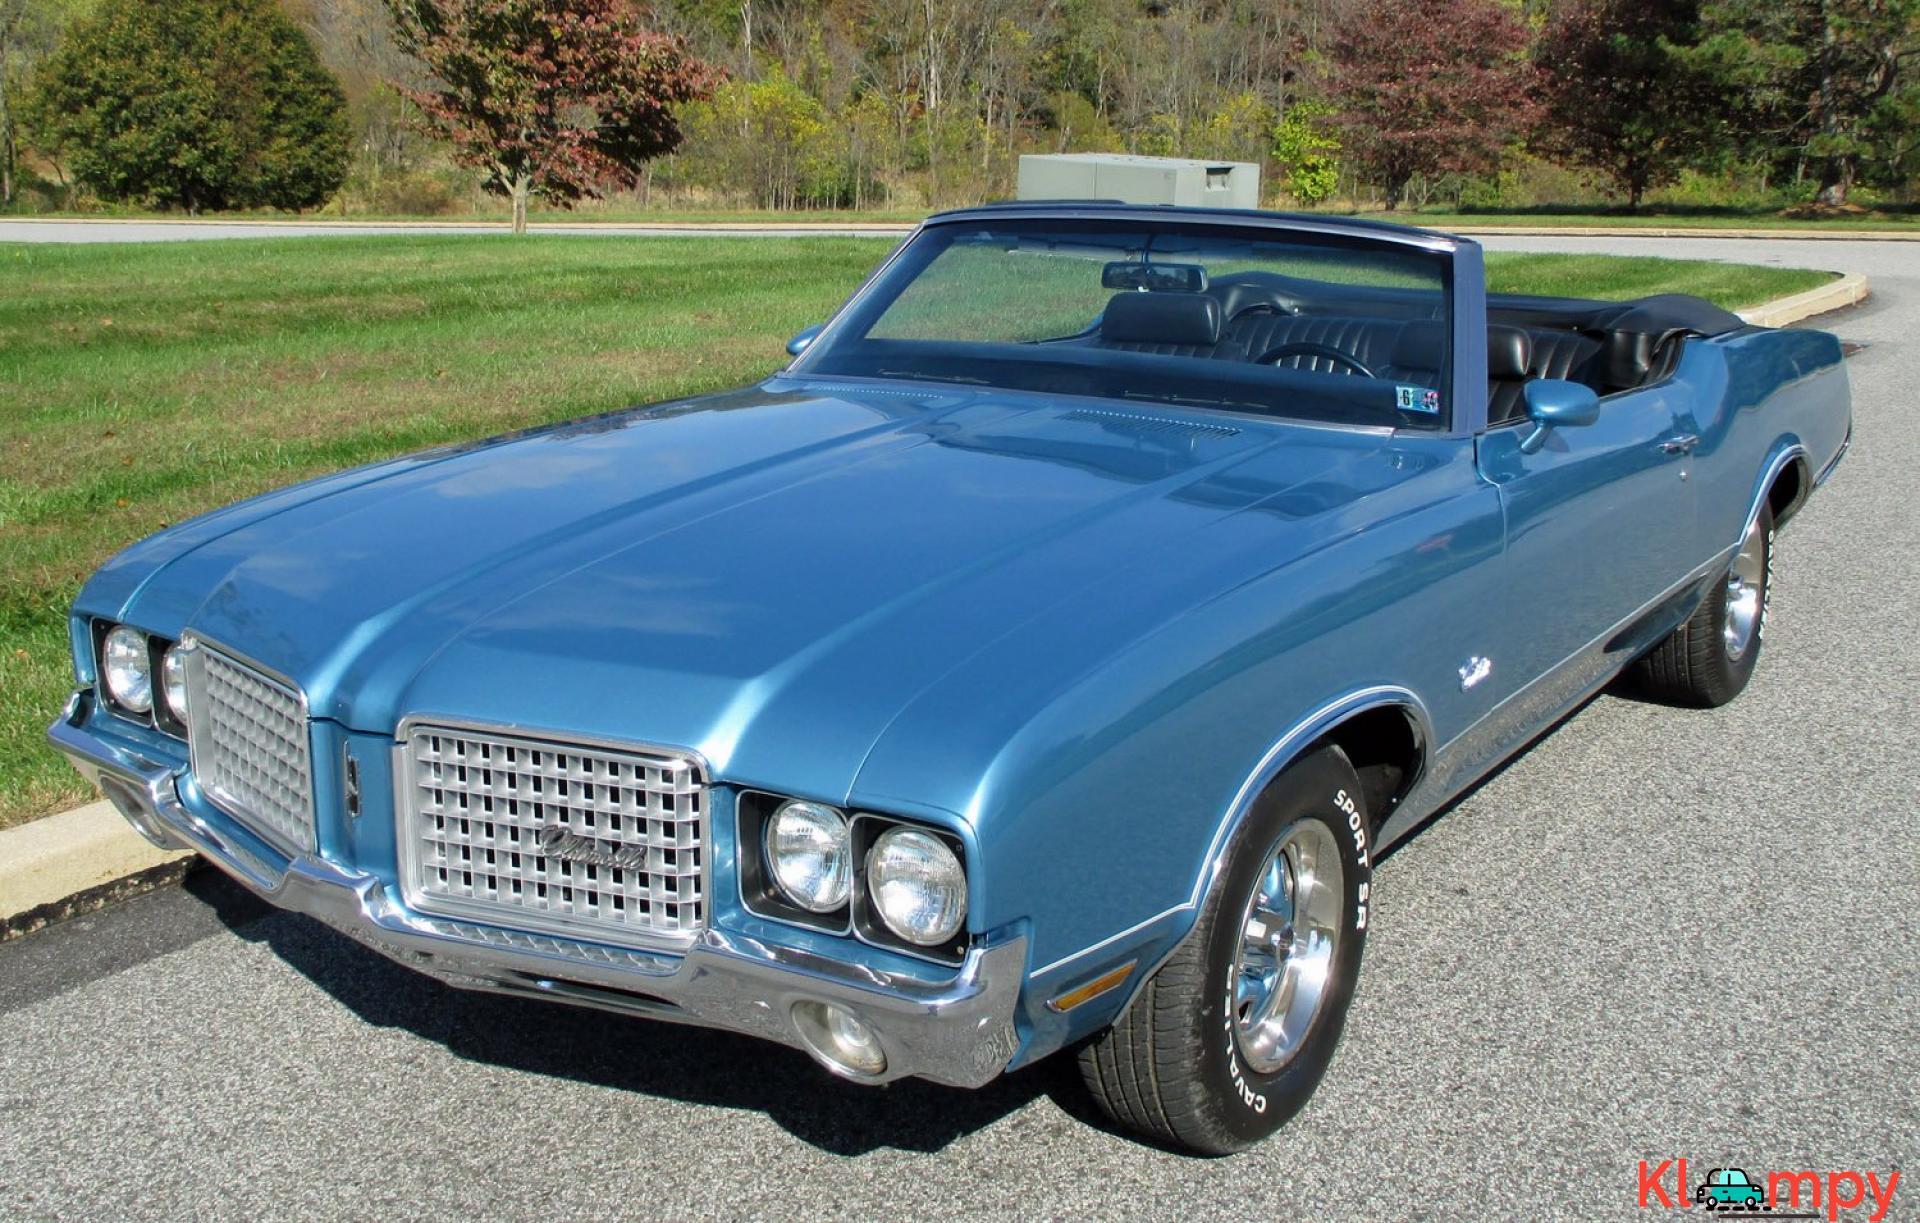 1972 Oldsmobile Cutlass Supreme 350 Convertible V8 - 3/19